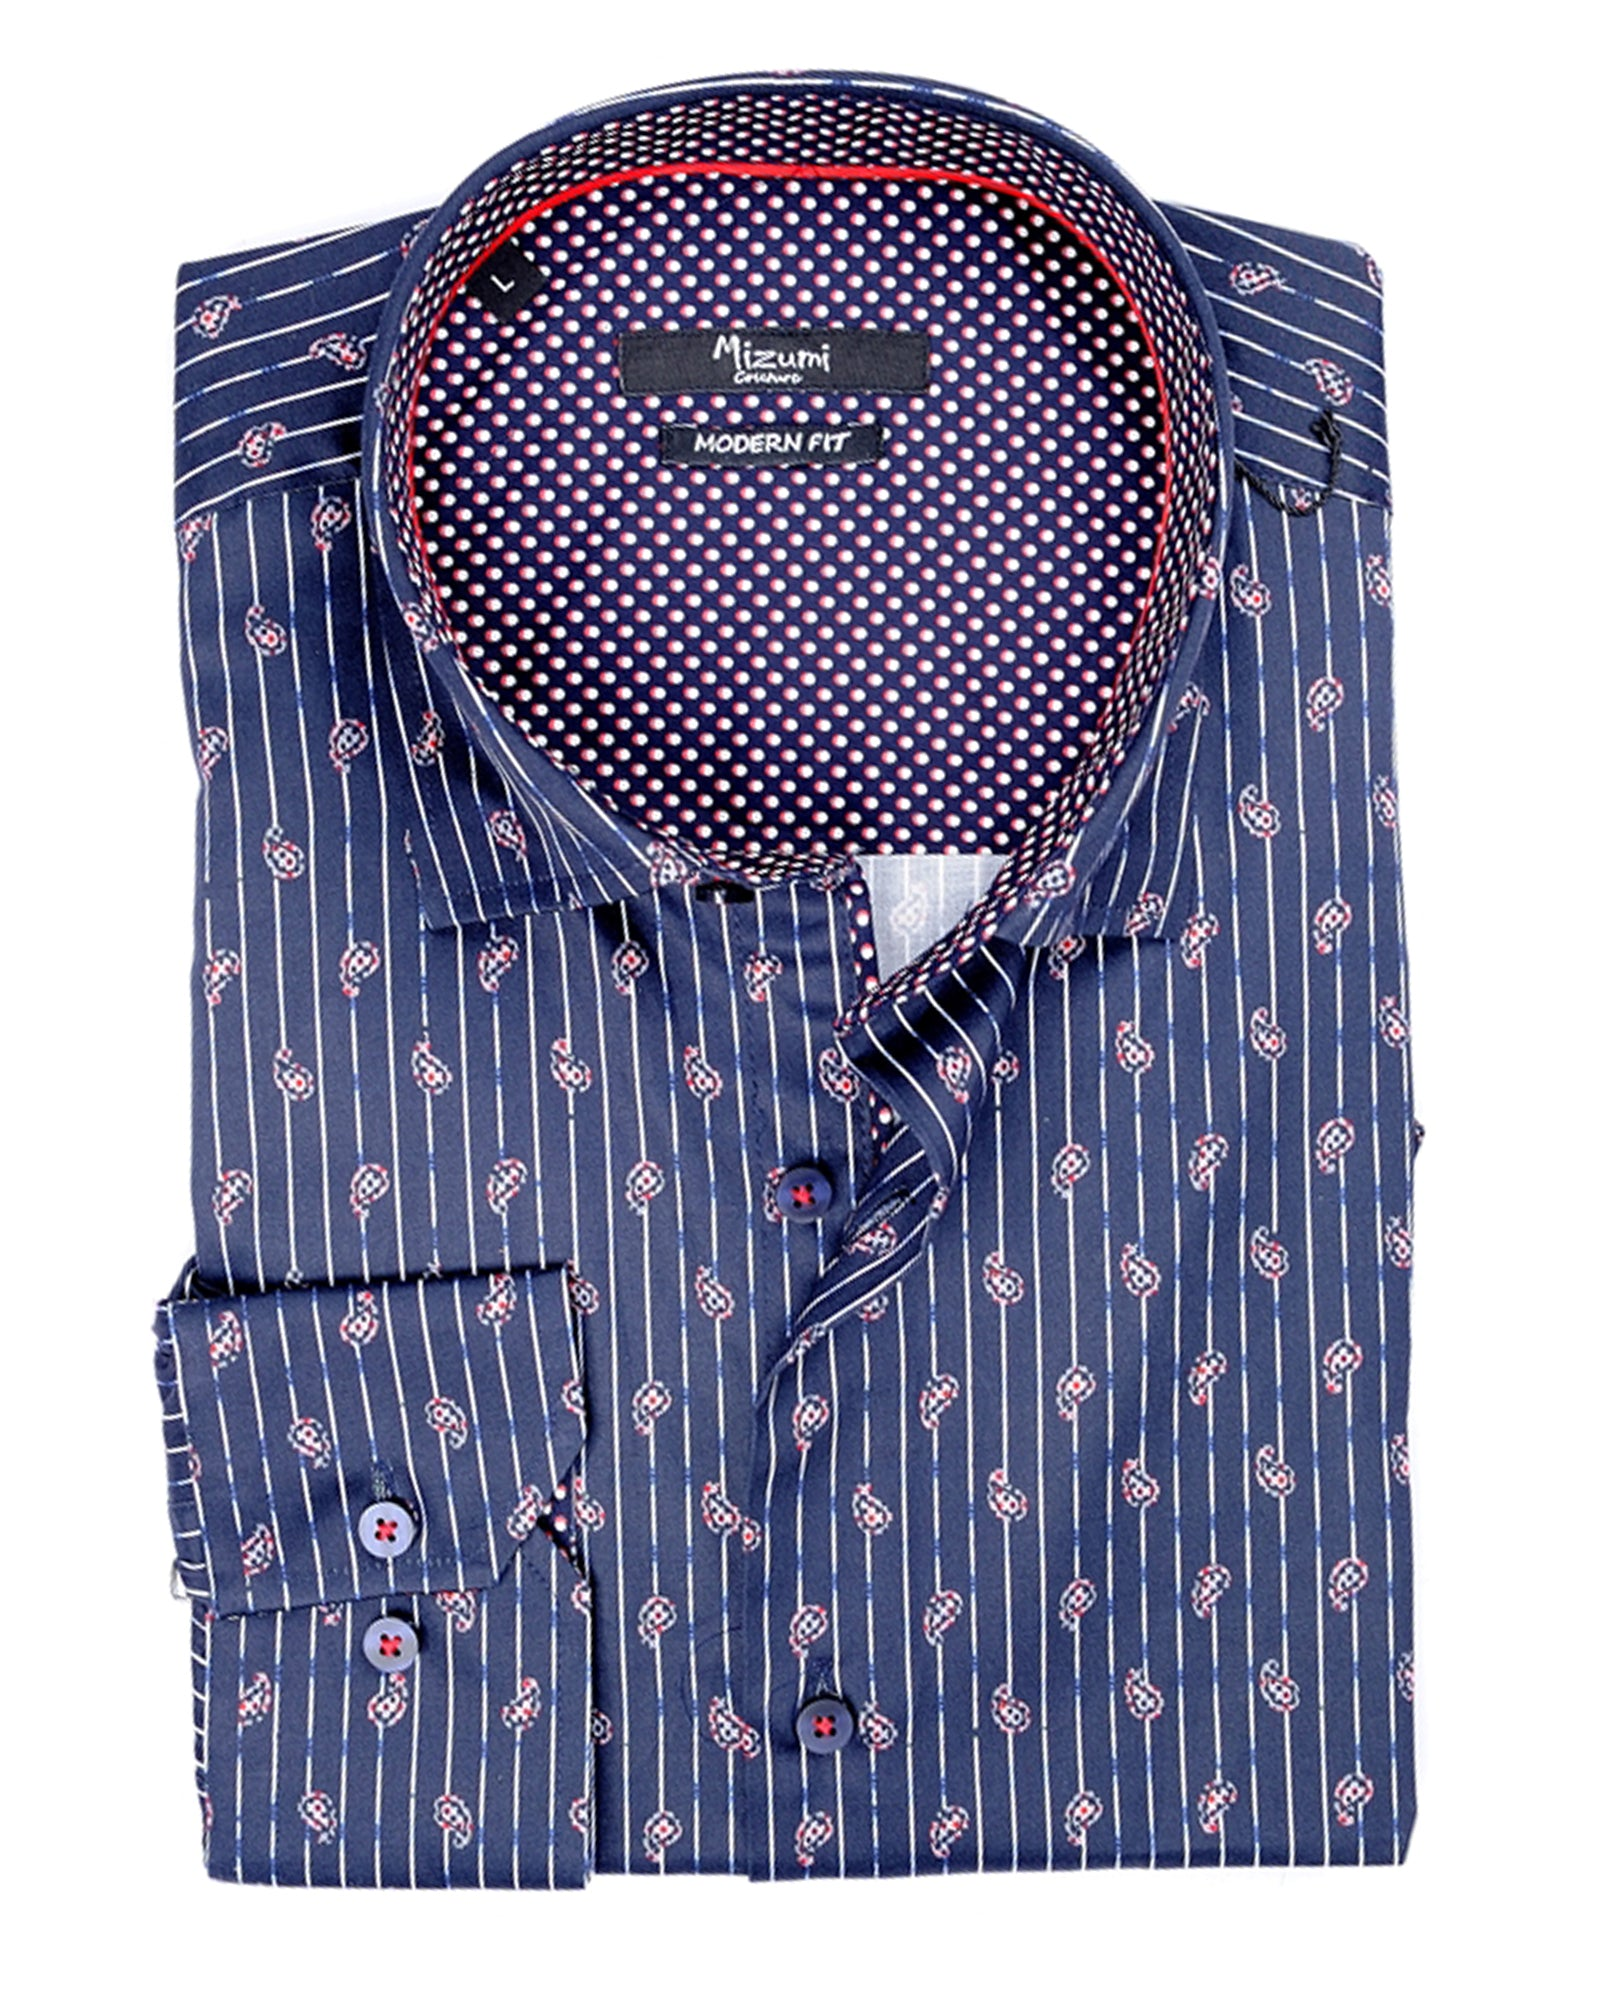 Navy Paisley Stripe Sport Shirt - Rainwater's Men's Clothing and Tuxedo Rental